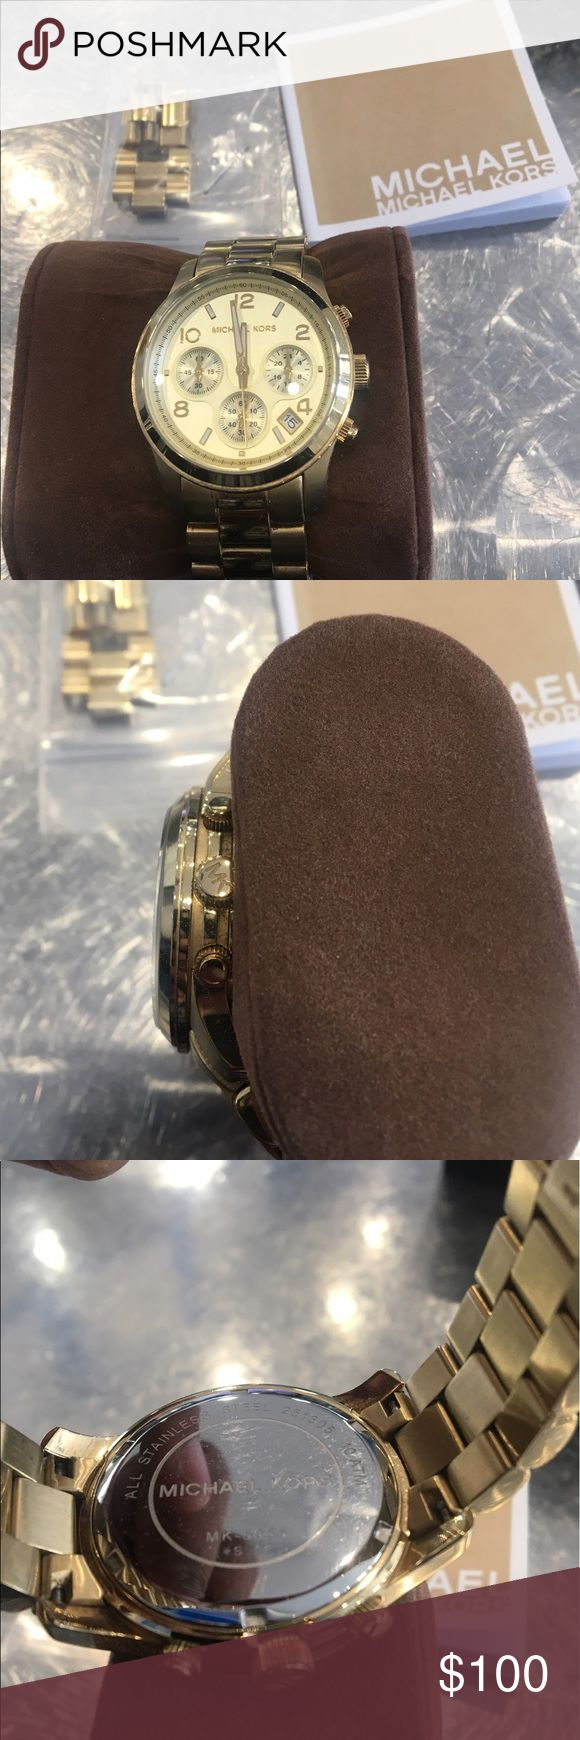 Michael kors watch women Mk-5055 female watch in great shape come with extra links Accessories Watches